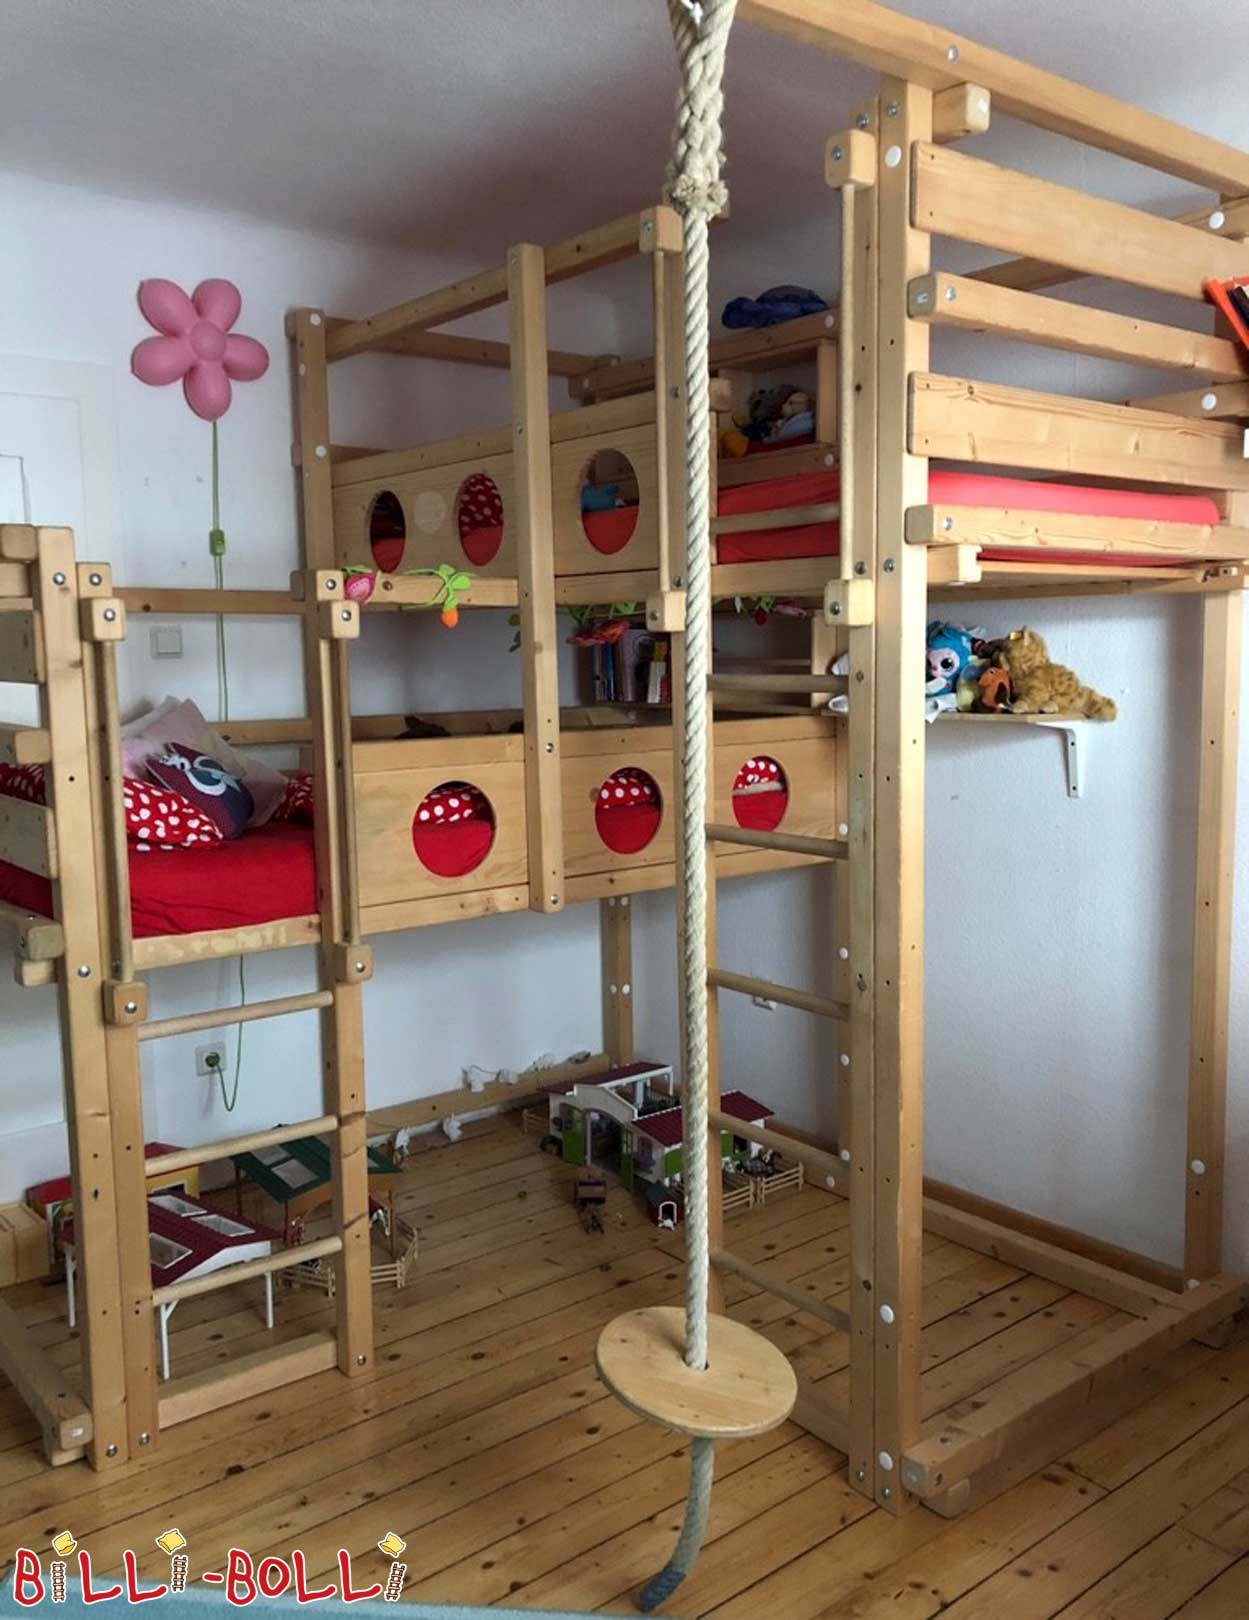 Both-the-bed type 2A (second hand kids' furniture)